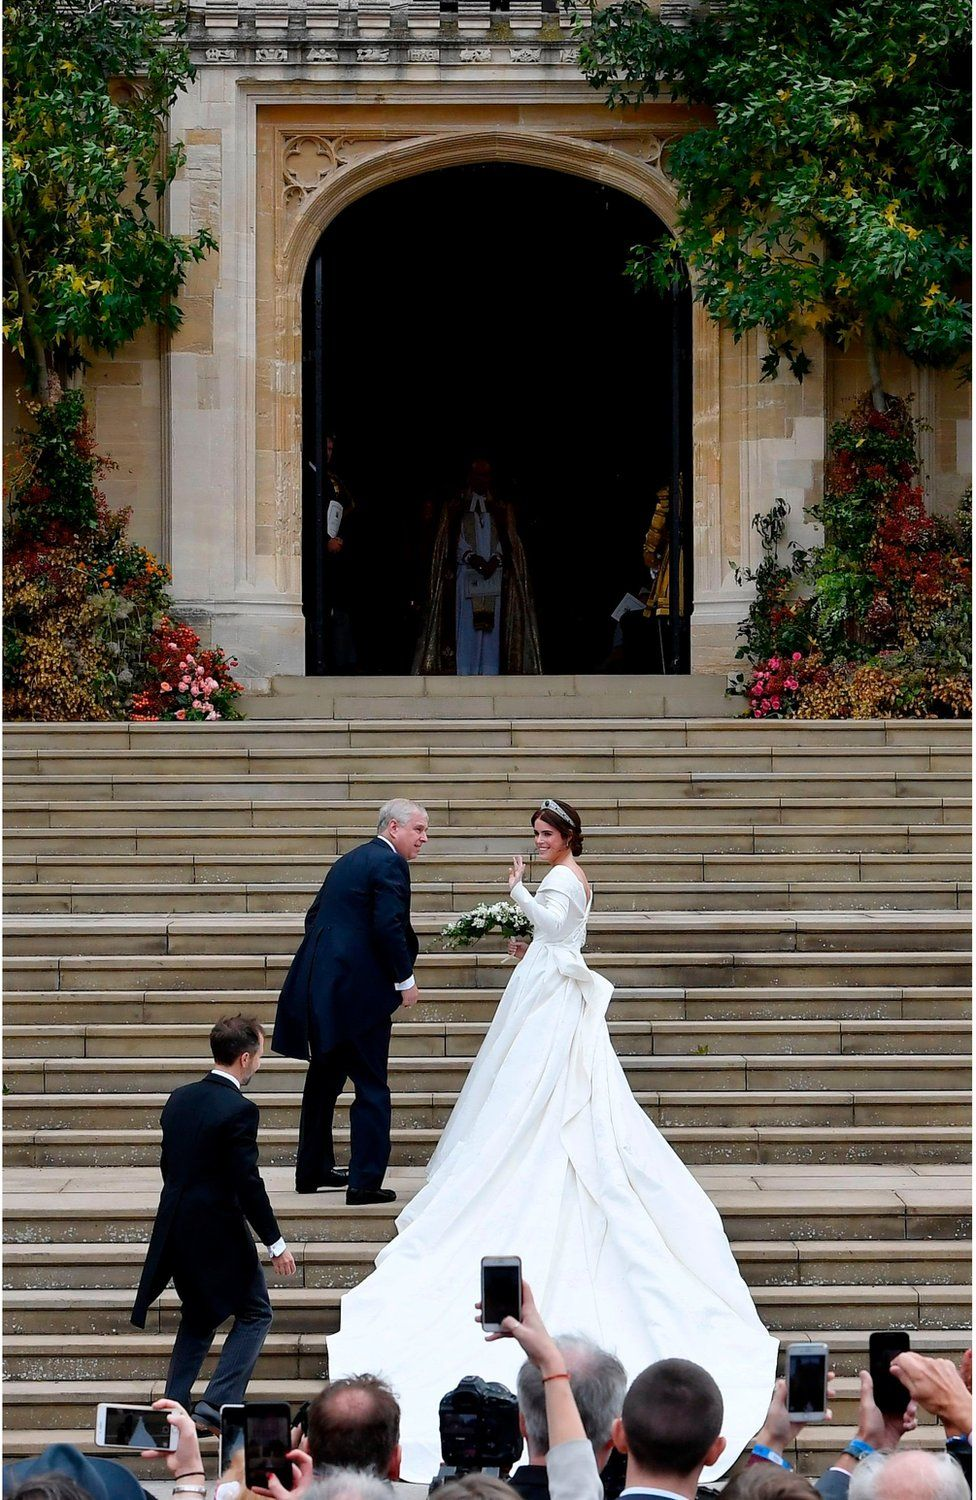 Beautiful Pictures Of British Royal Wedding Of Princess Eugenie Grand Daughter Of Queen